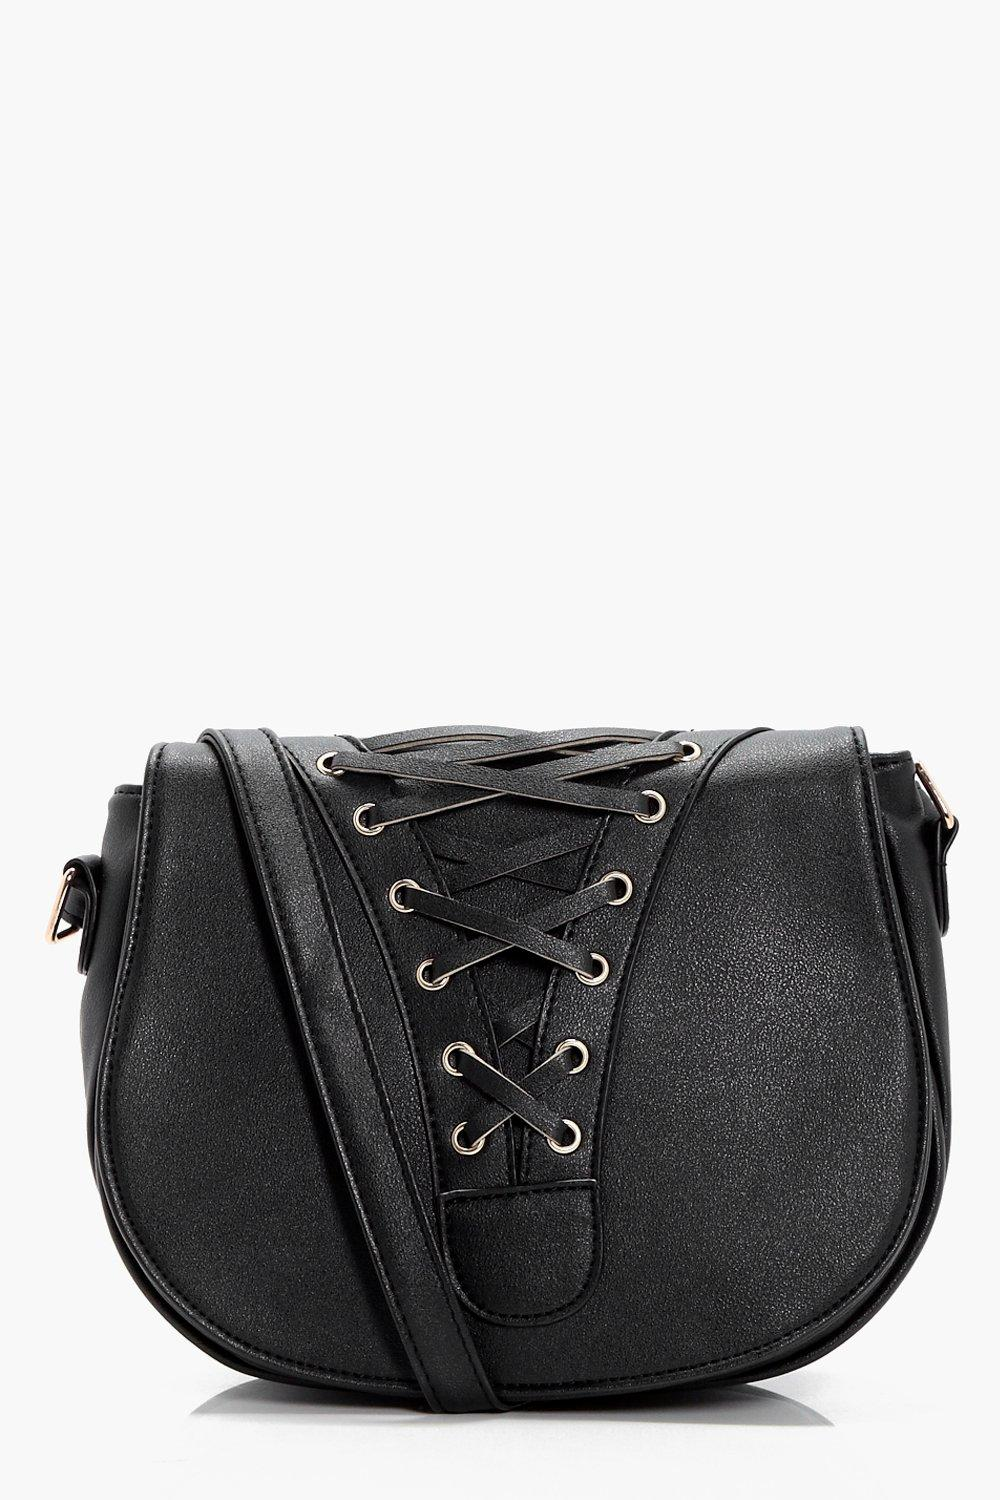 Lace Up Corset Saddle Bag - black - Heather Lace U